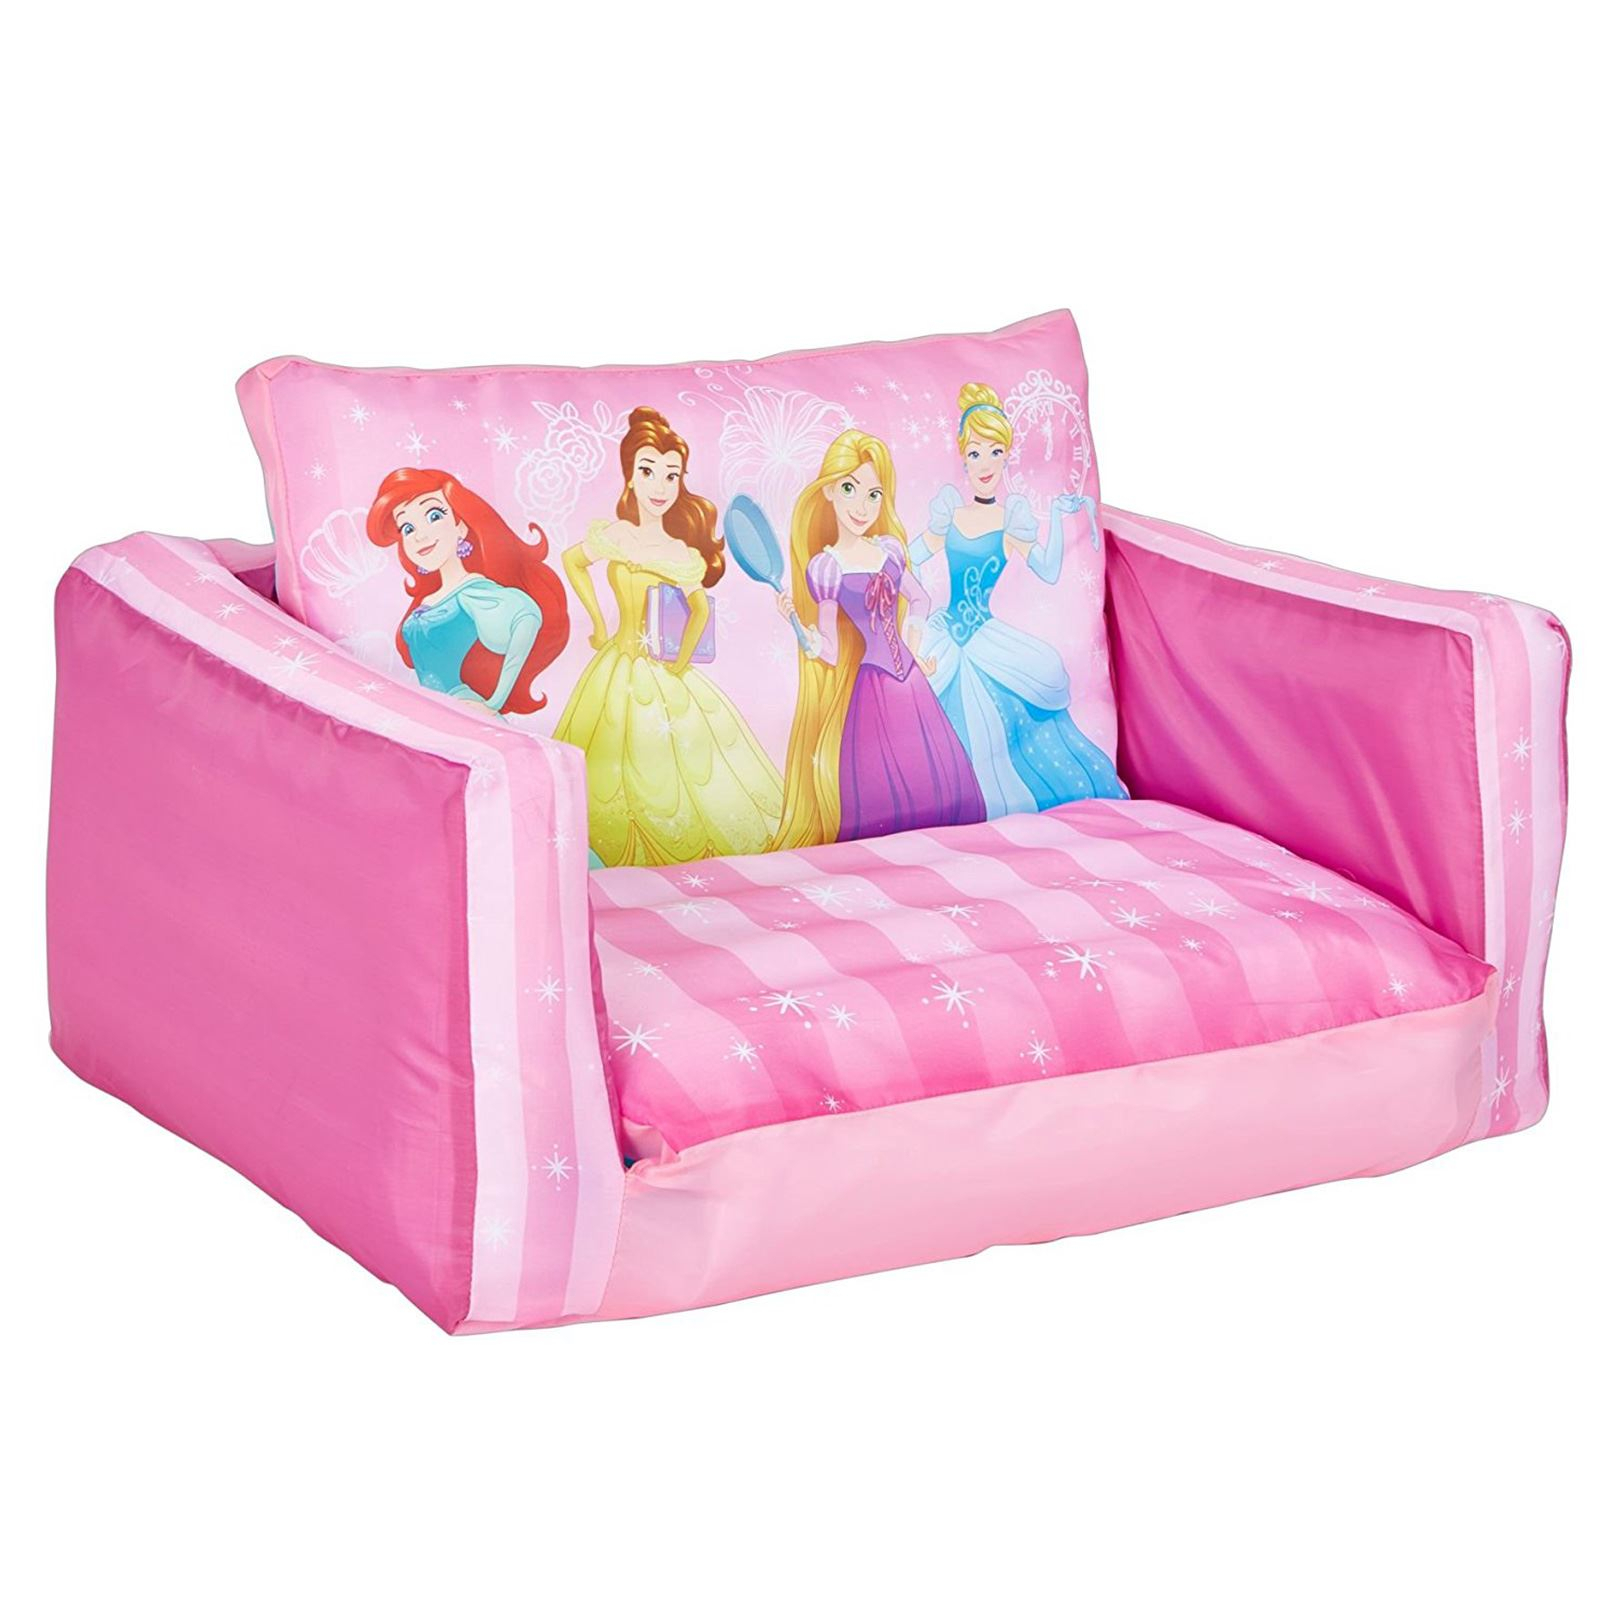 Disney Princess Flip Out Sofa Kids Inflatable Belle In Disney Sofa Chairs (View 7 of 15)